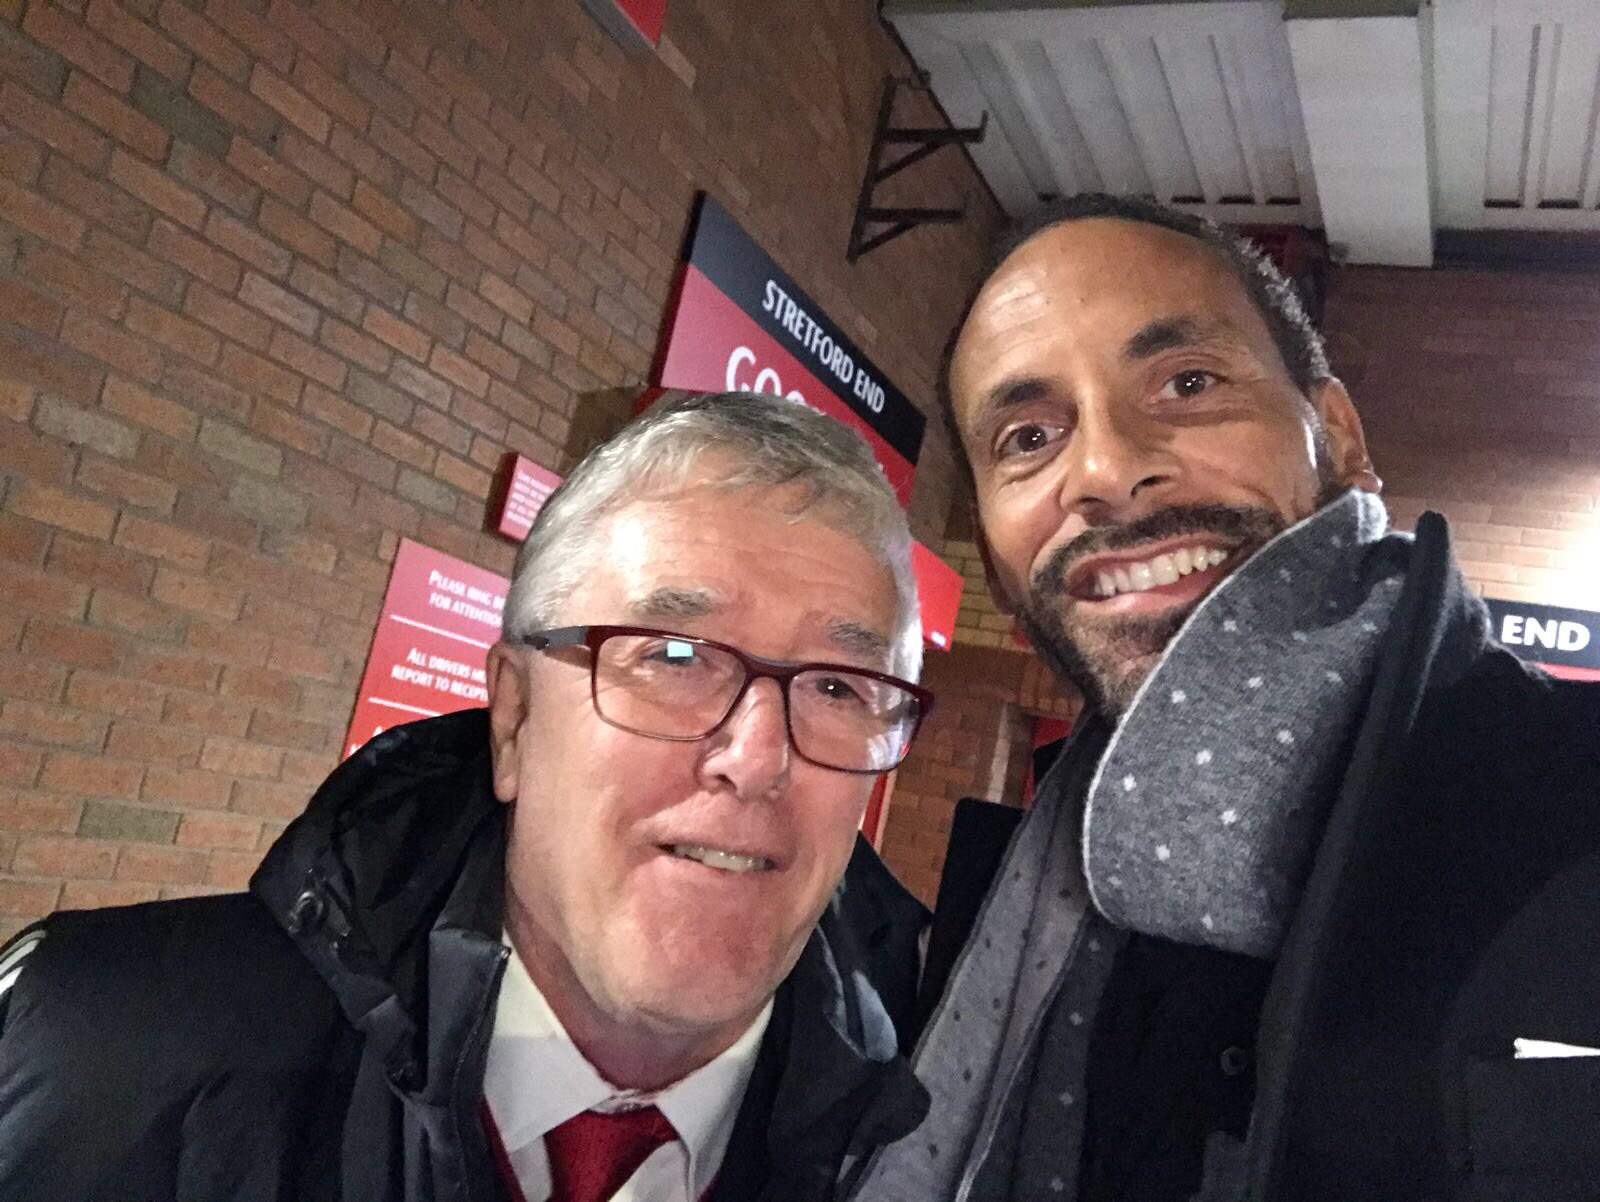 Great seeing this legend yesterday..... Albert the kitman! Love this guy. Spent 5mins reminiscing!! #mufc https://t.co/h6uG14rAMW